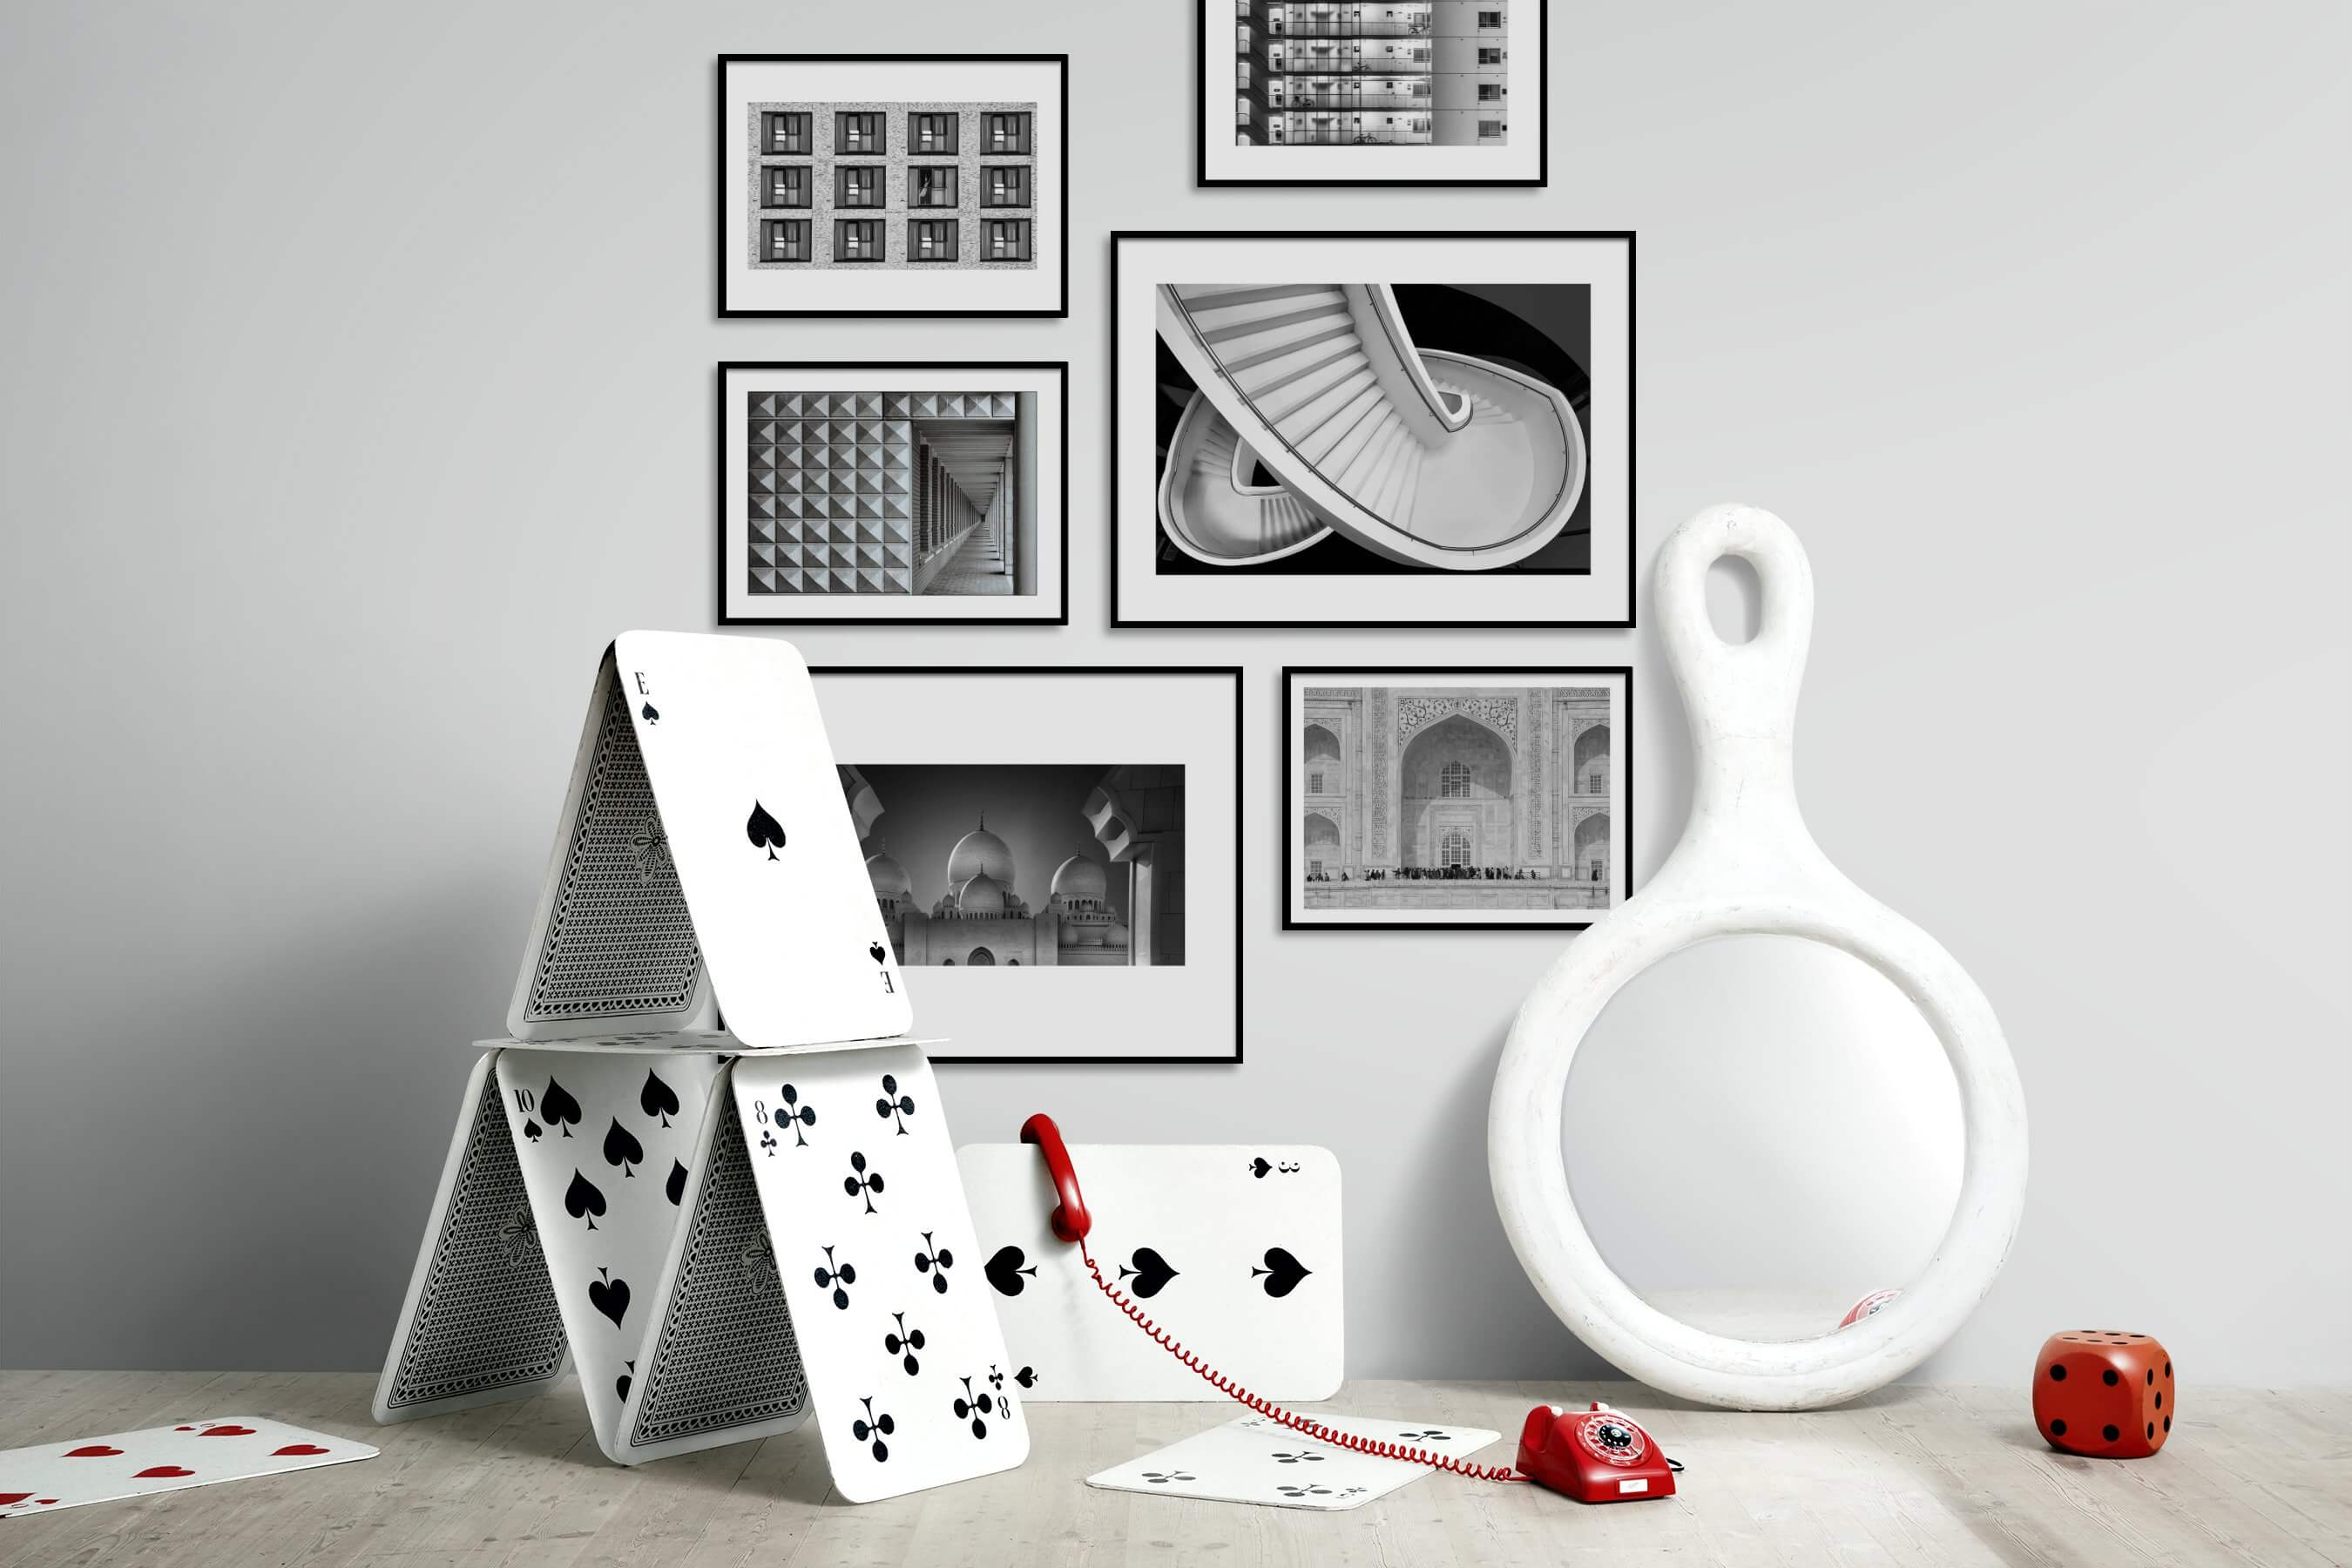 Gallery wall idea with six framed pictures arranged on a wall depicting Black & White, For the Moderate, City Life, and For the Maximalist